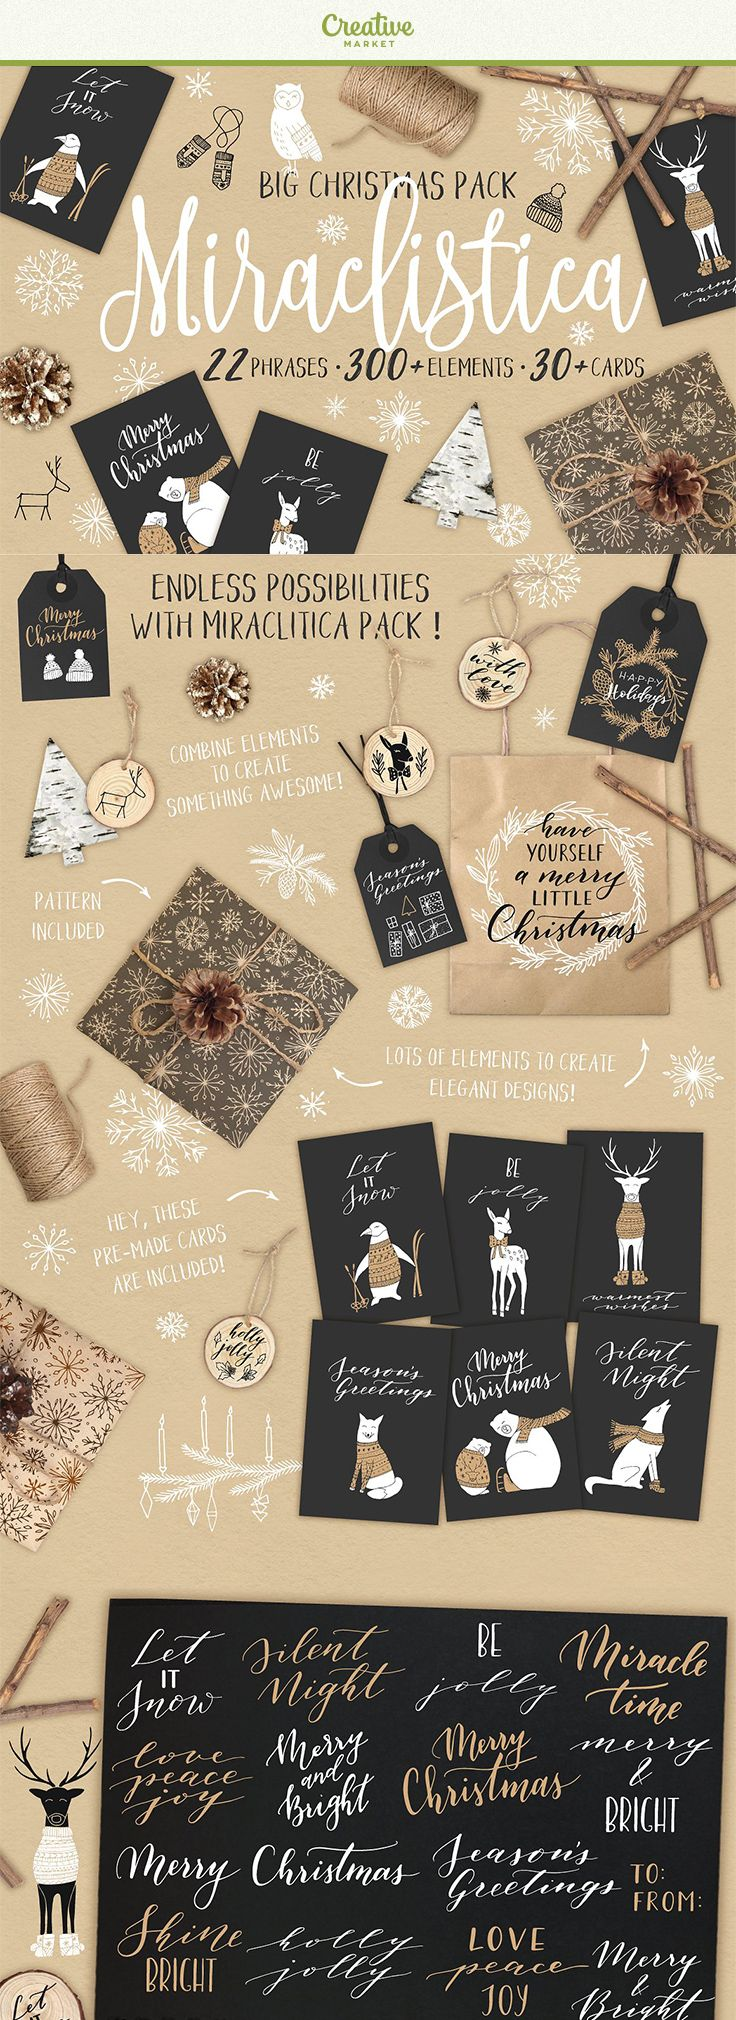 Affiliate | Miraclistica is a big Christmas pack, which contains lots of hand drawn elegant and lovely elements, overlays, patterns and cards to make it easier to prepare for the most wonderful time of the year, Christmas.Cute and festive graphic elements and hand lettered phrases are perfect for any creative project and can be used in websites, blogs, stationery, invitations, cards, wrapping paper, tags and a lot more.